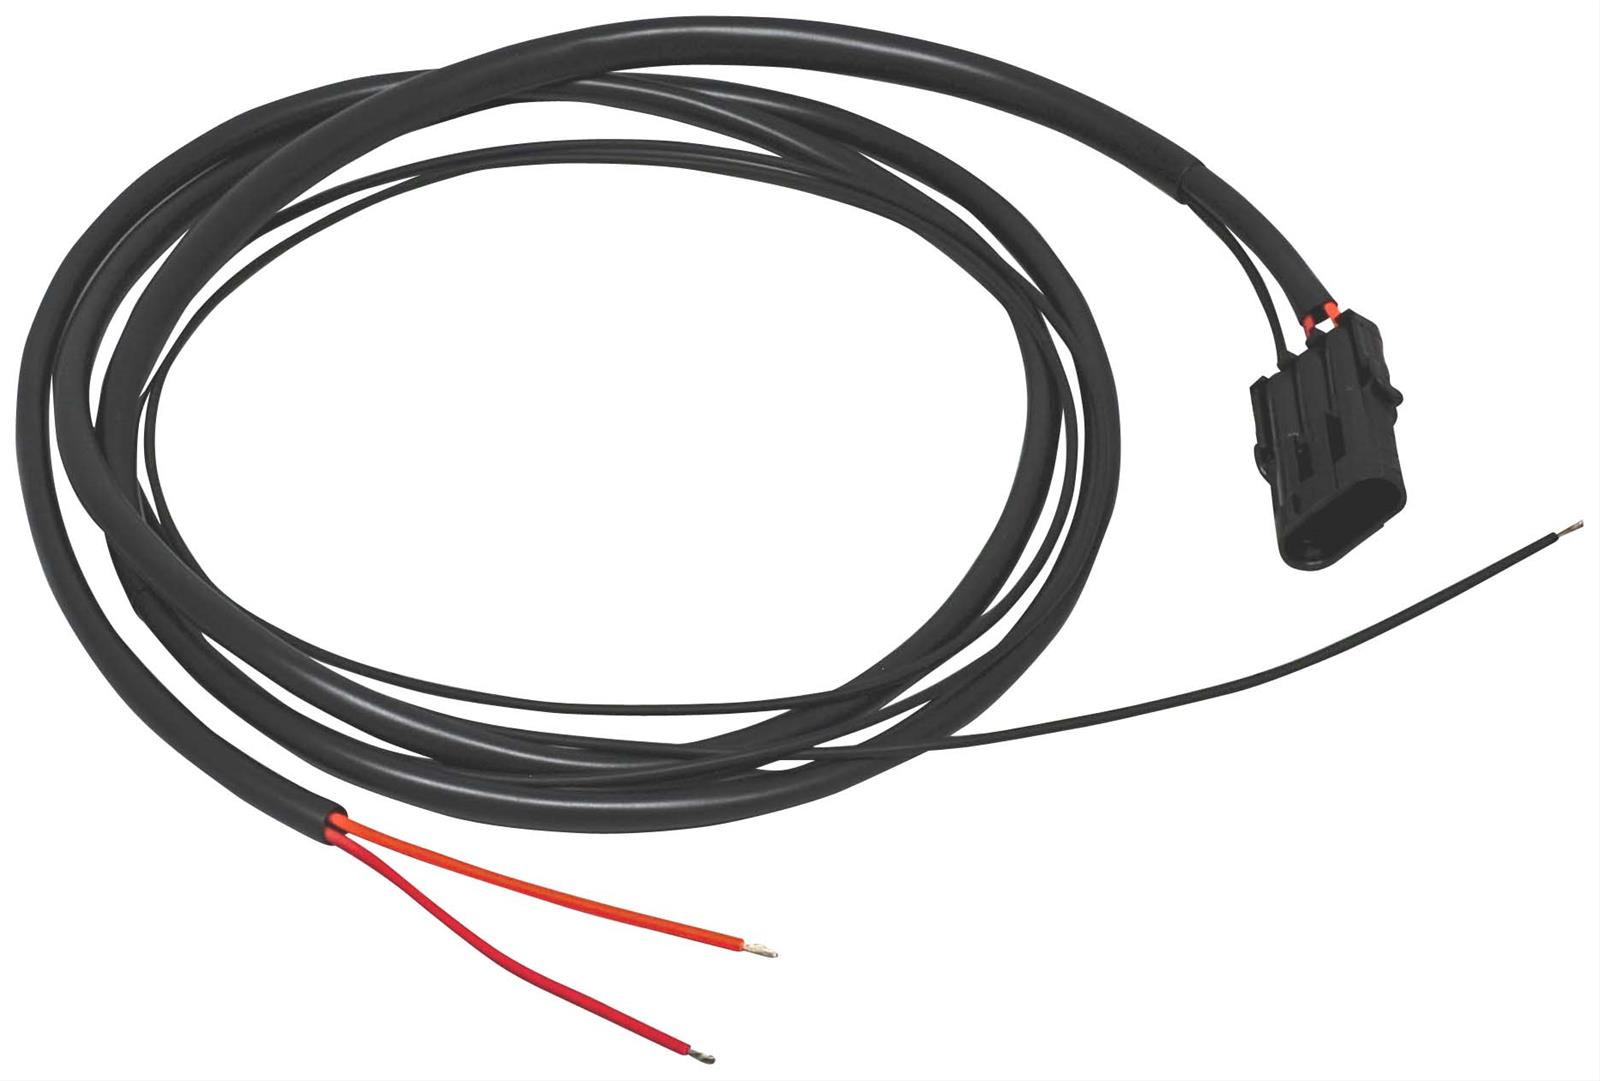 msd replacement distributor wiring harnesses 88621 - free shipping on  orders over $99 at summit racing